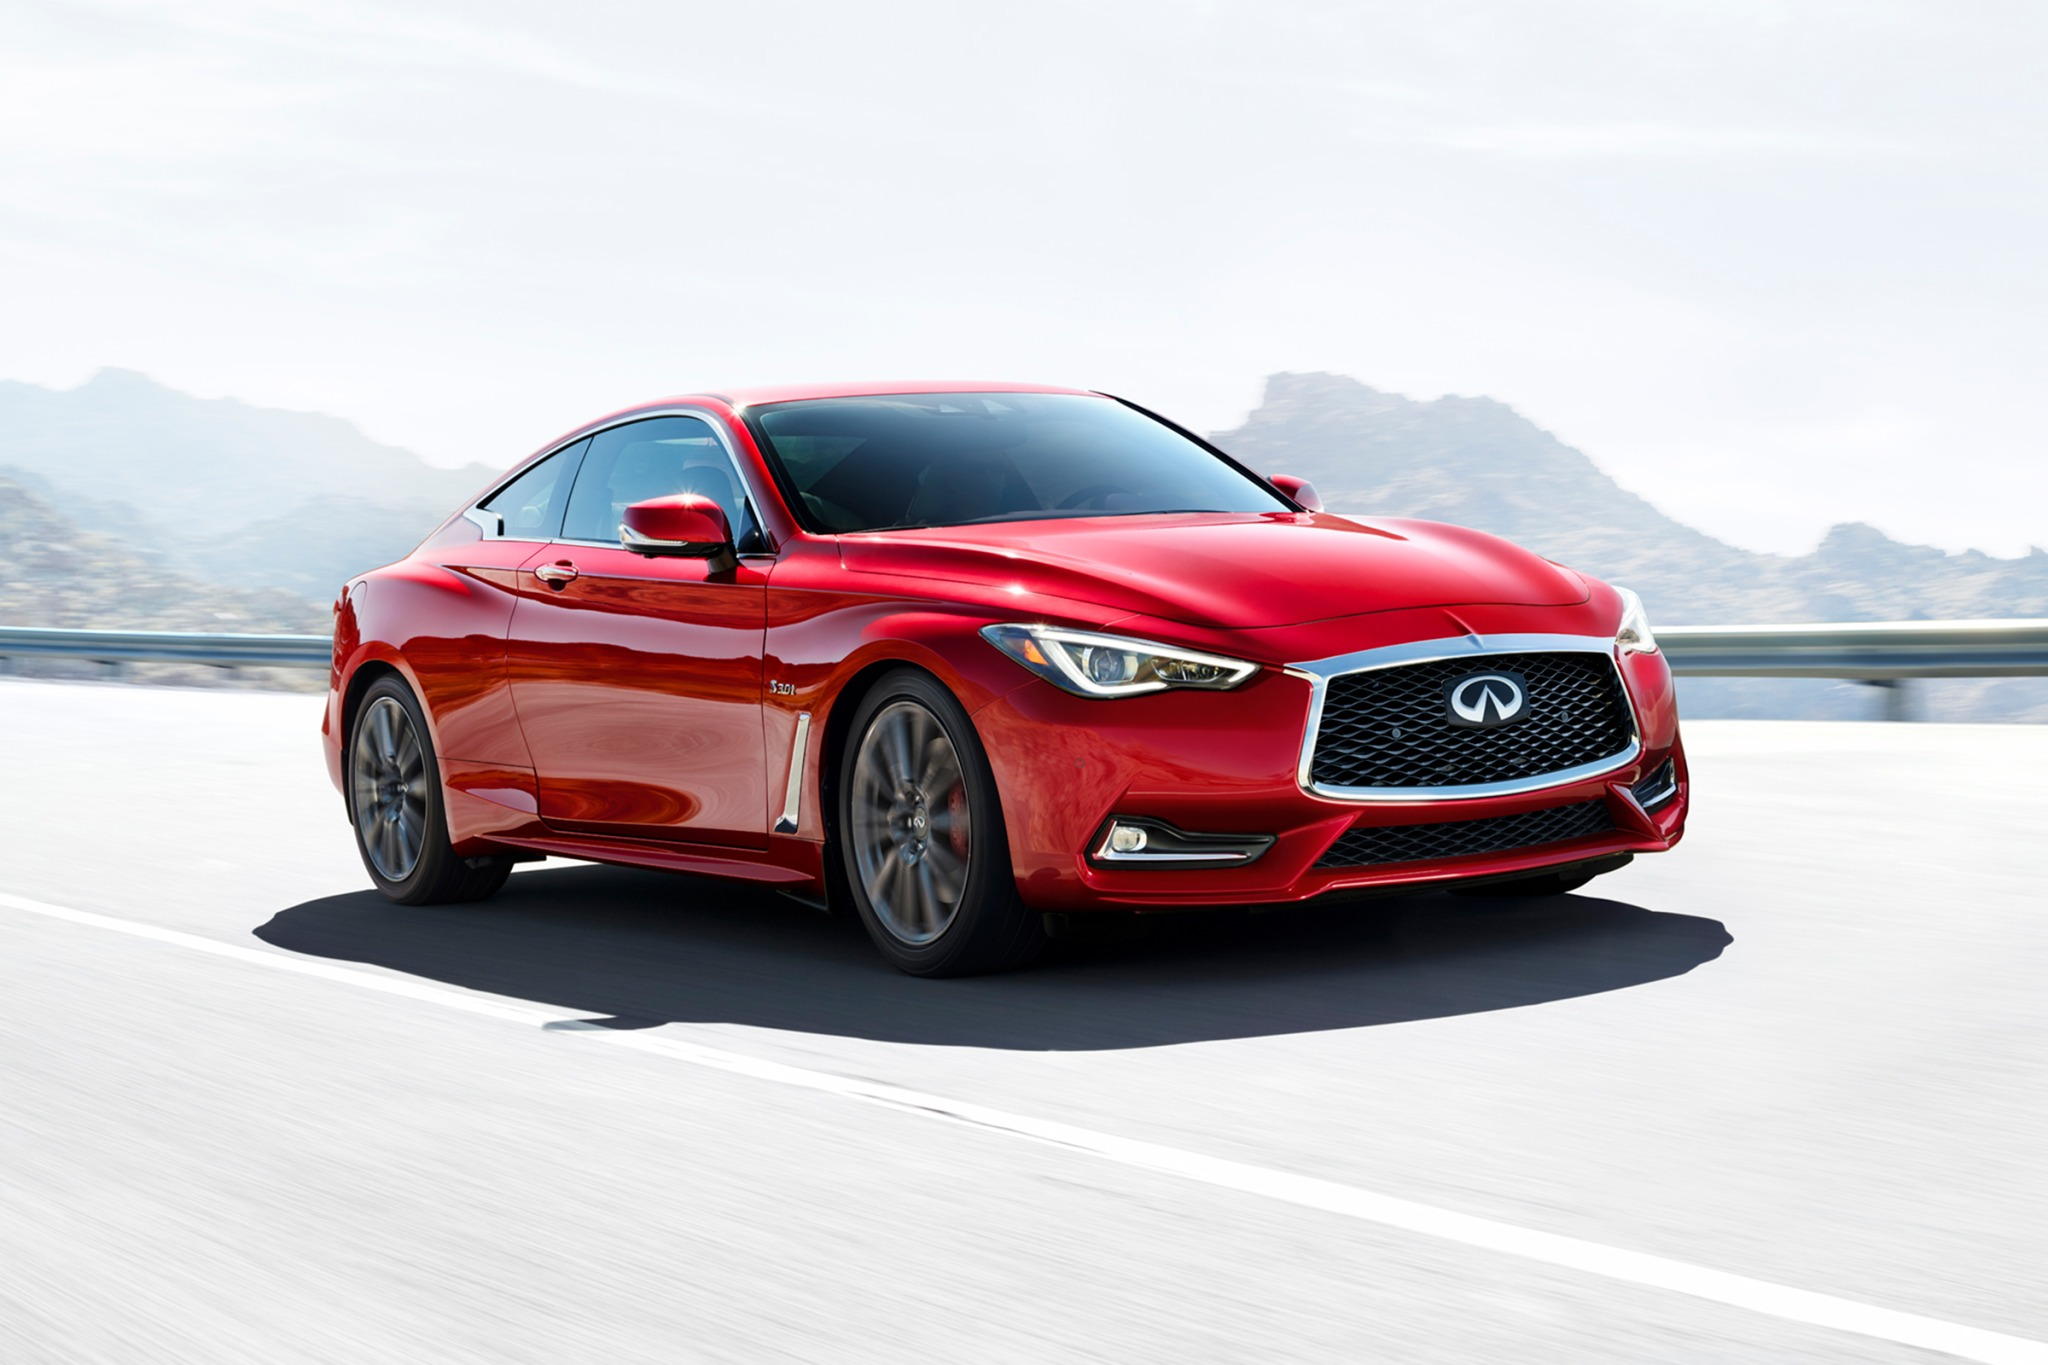 2017 infiniti q60 coupe coupe red sport 400 fq oem 1 2048